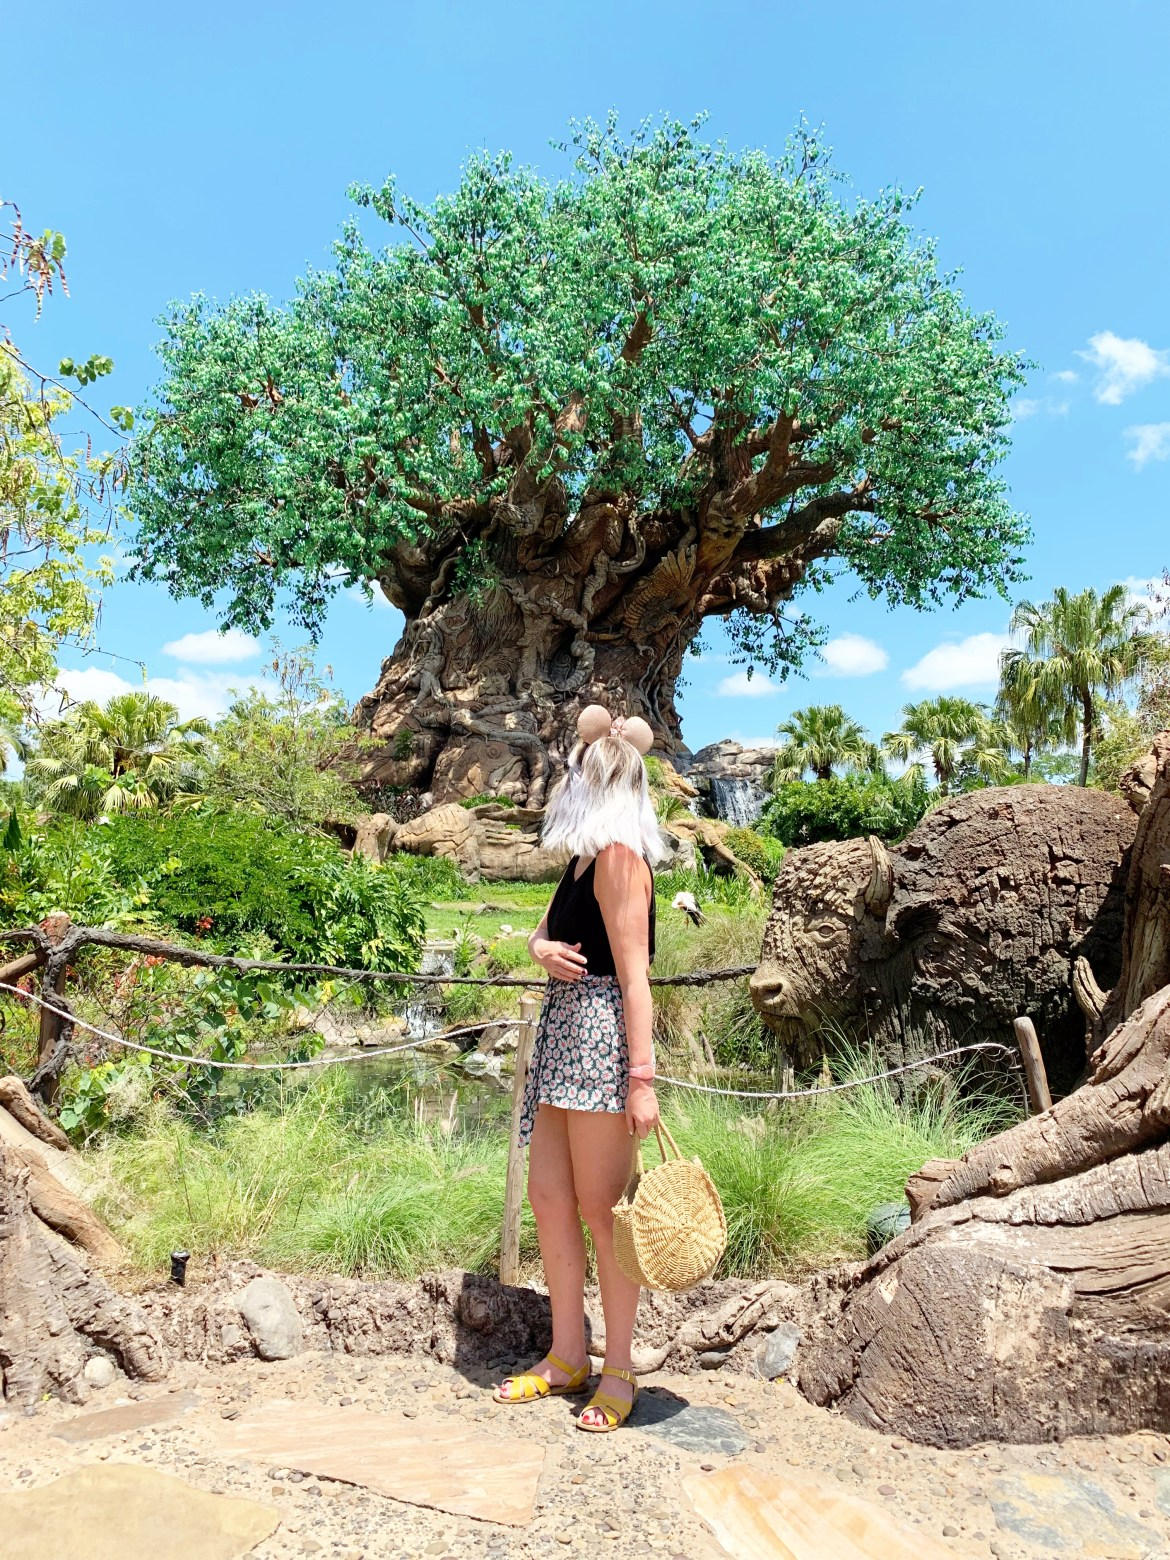 The Tree of Life, Magic Kingdom